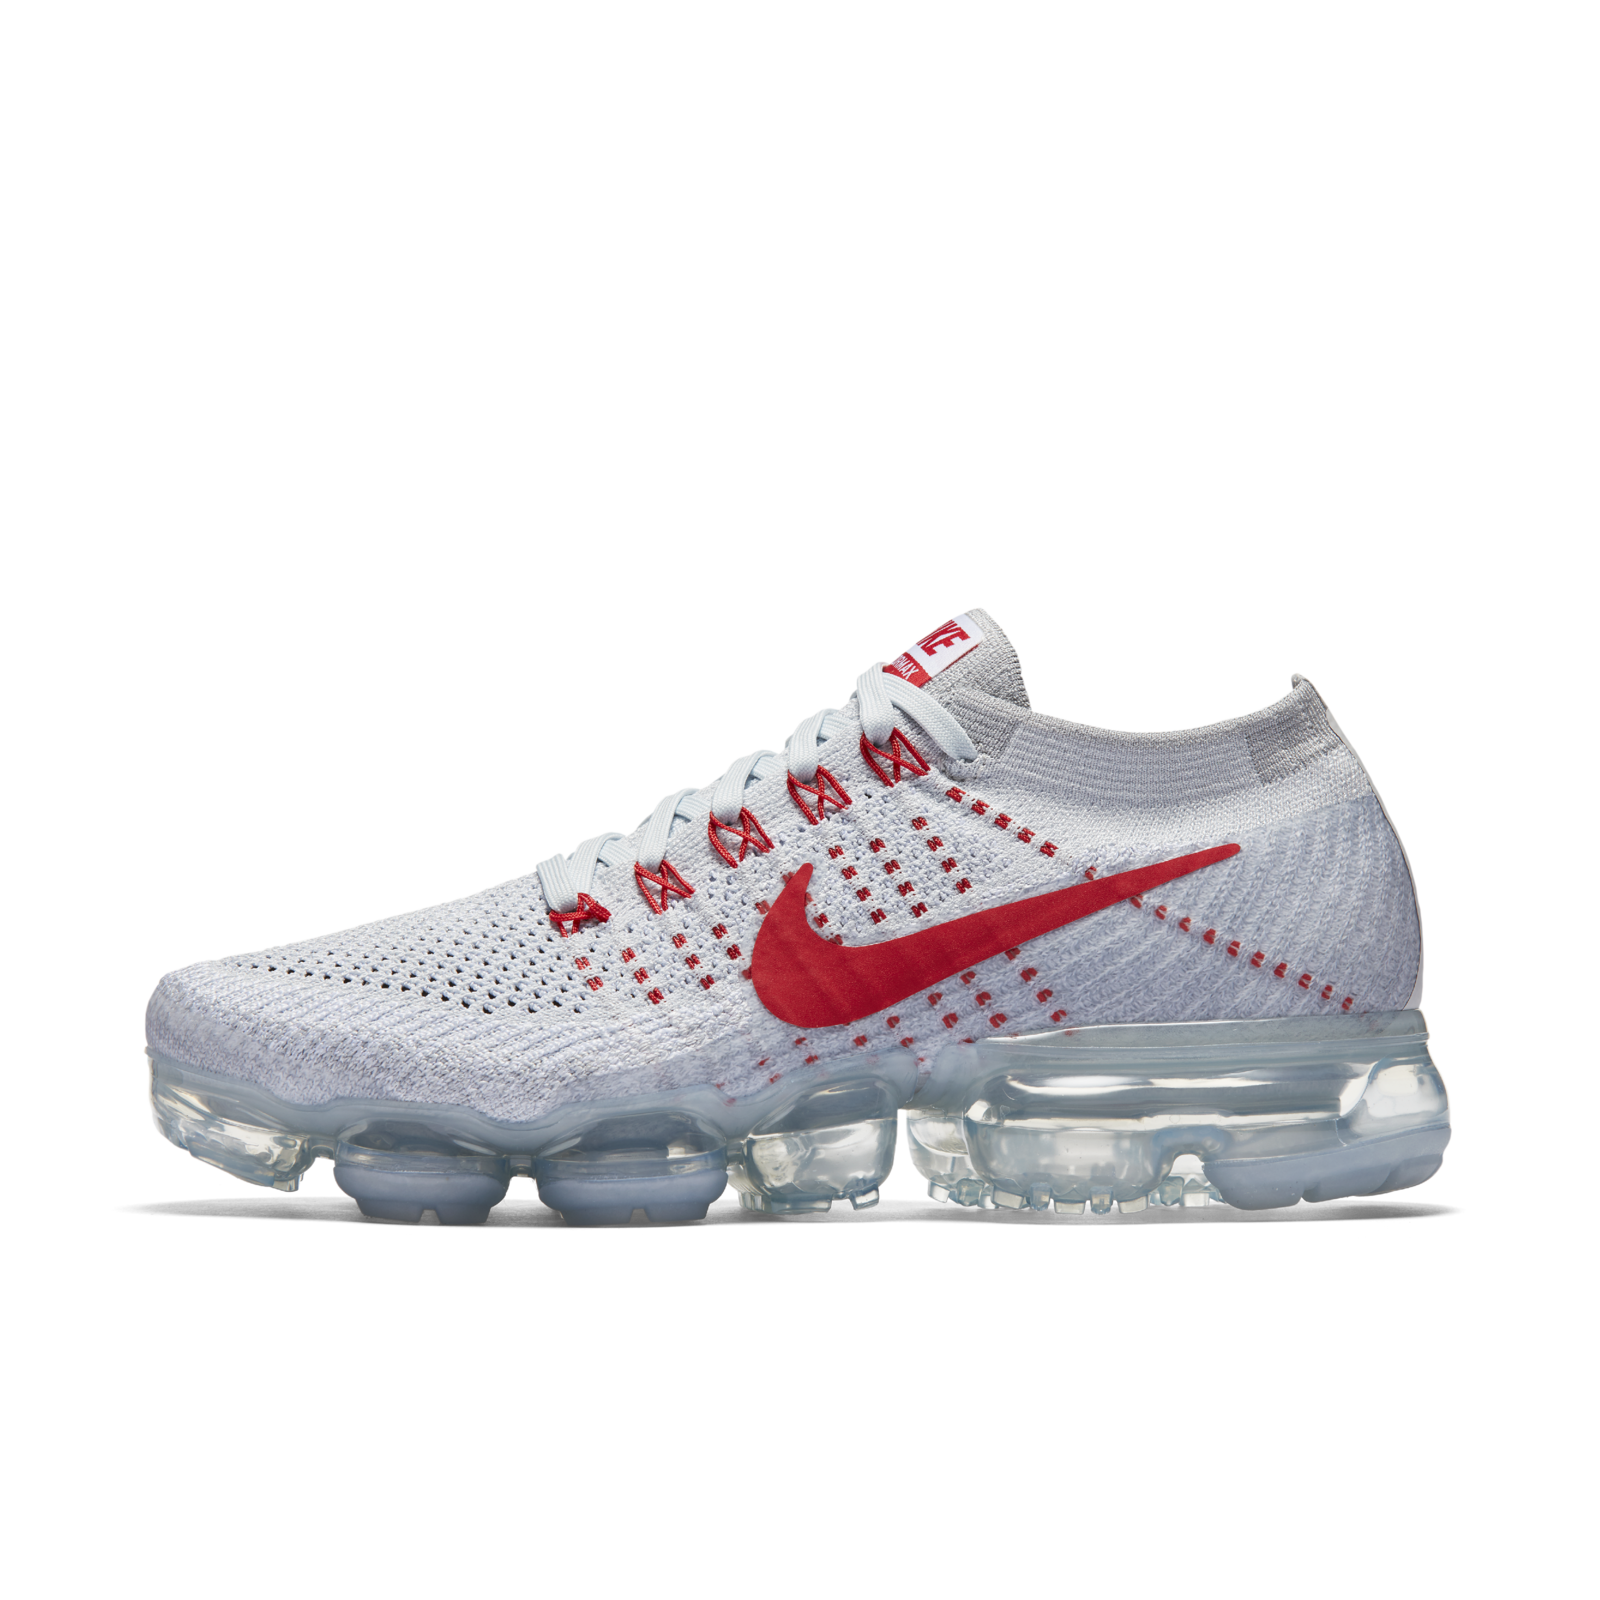 Nike Women's Air Max 90 Ultra 2.0 Flyknit Casual Shoe